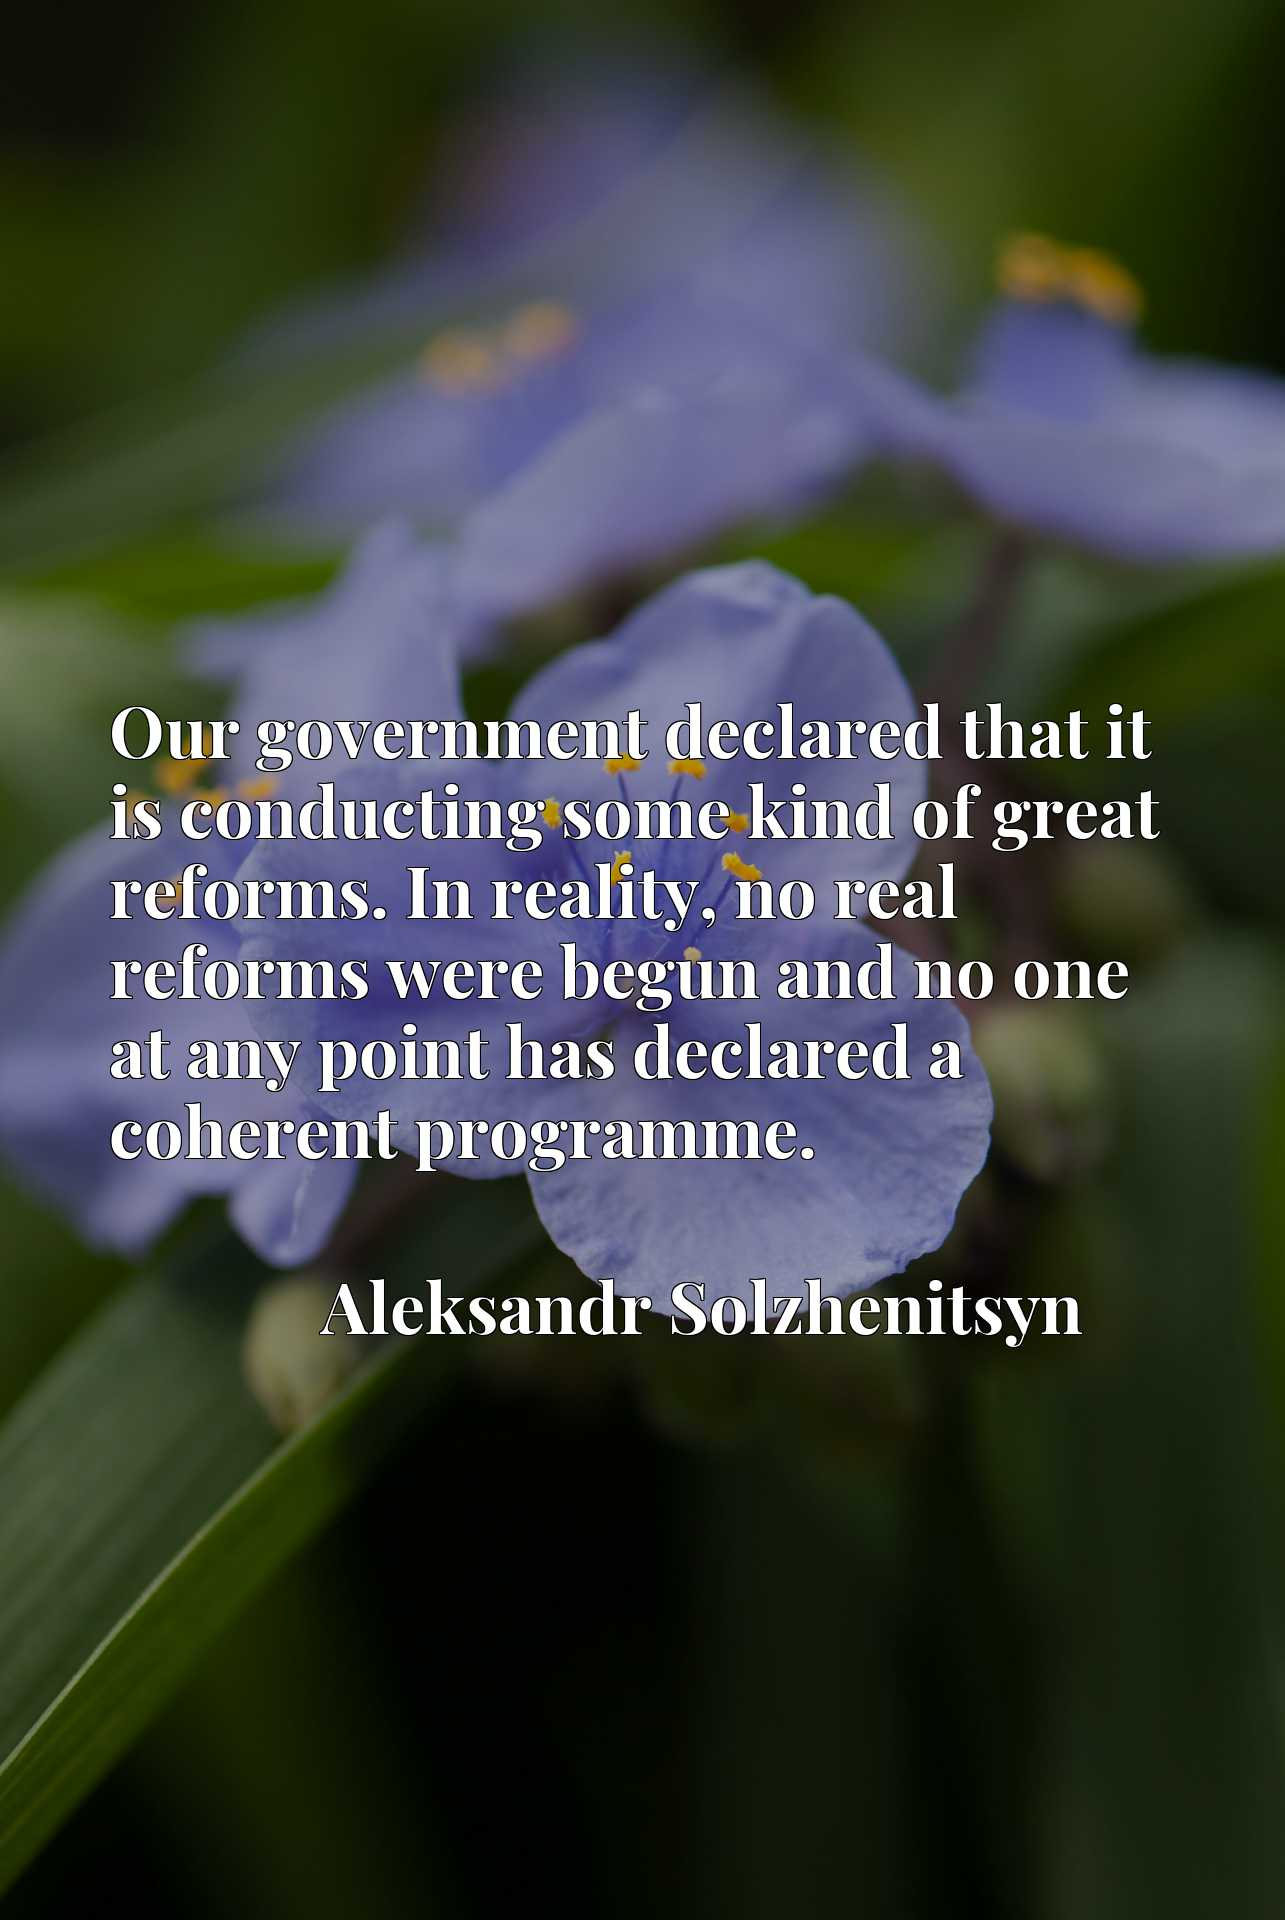 Our government declared that it is conducting some kind of great reforms. In reality, no real reforms were begun and no one at any point has declared a coherent programme.